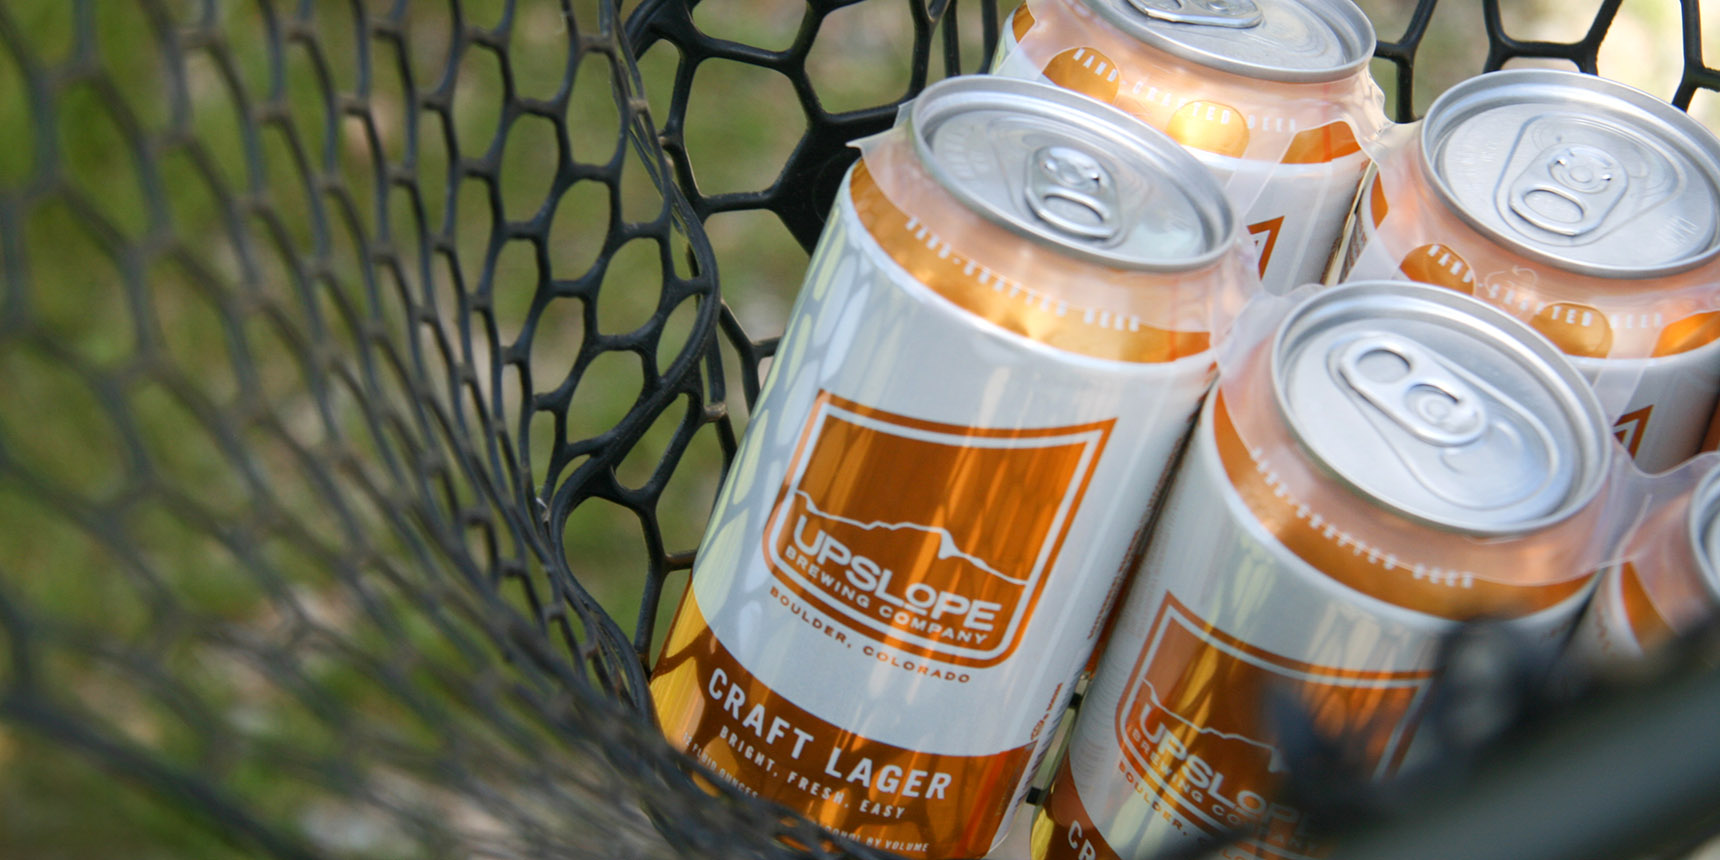 Upslope Brewing - Craft Lager